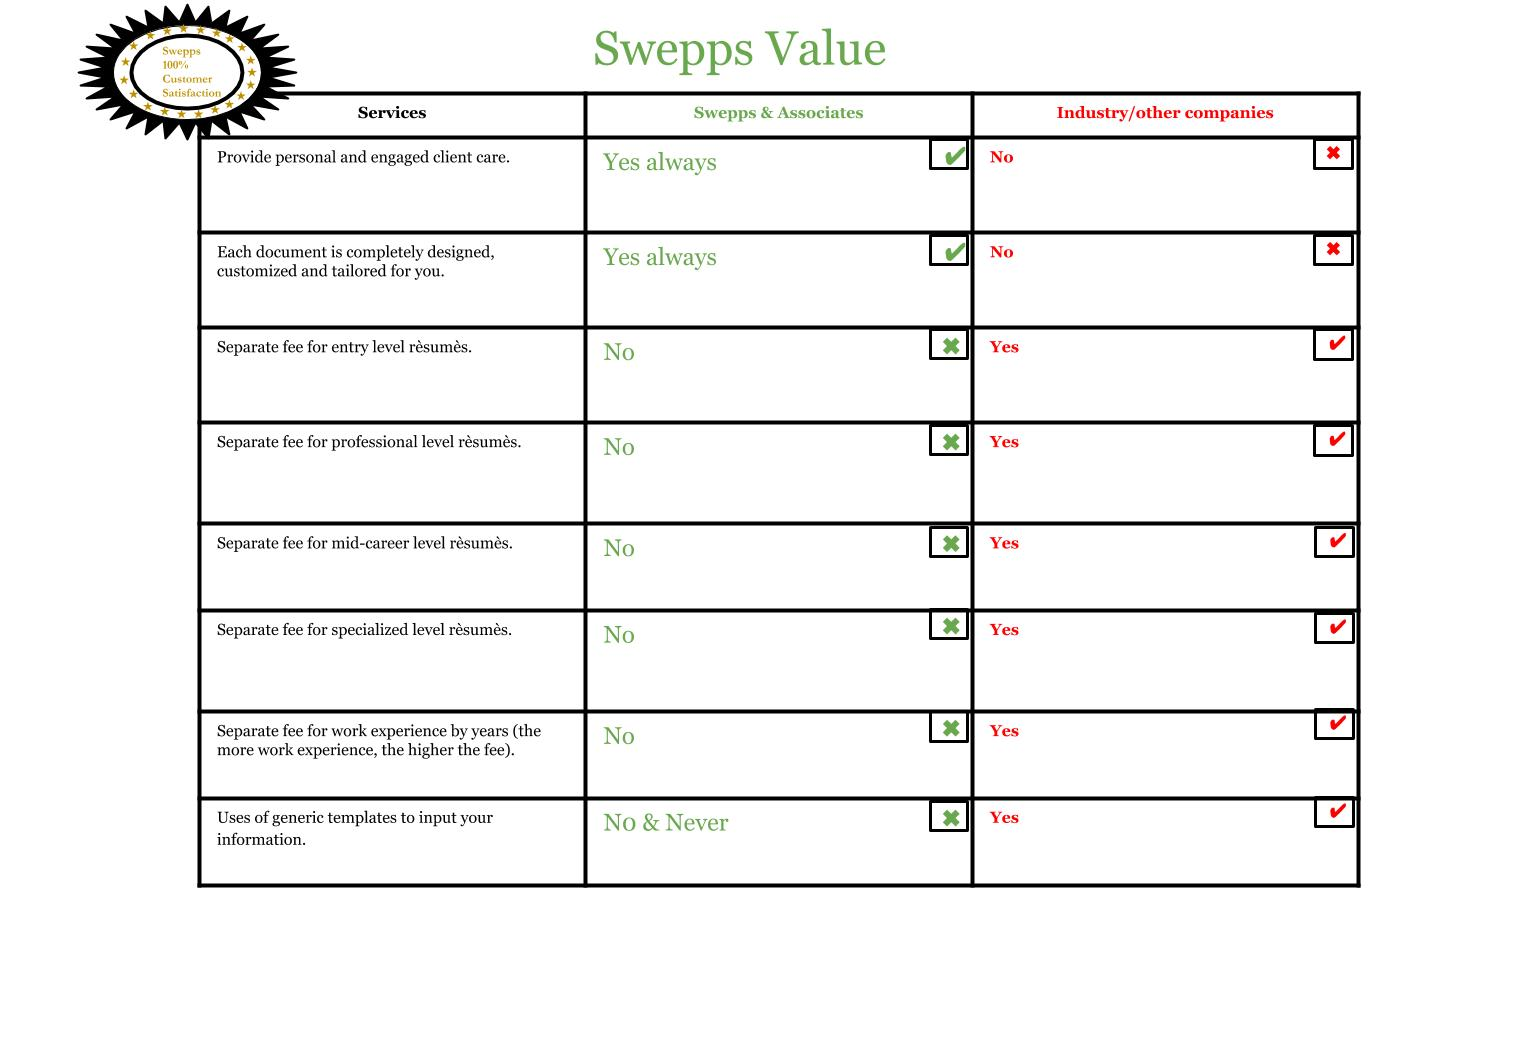 S&A Swepps Value B